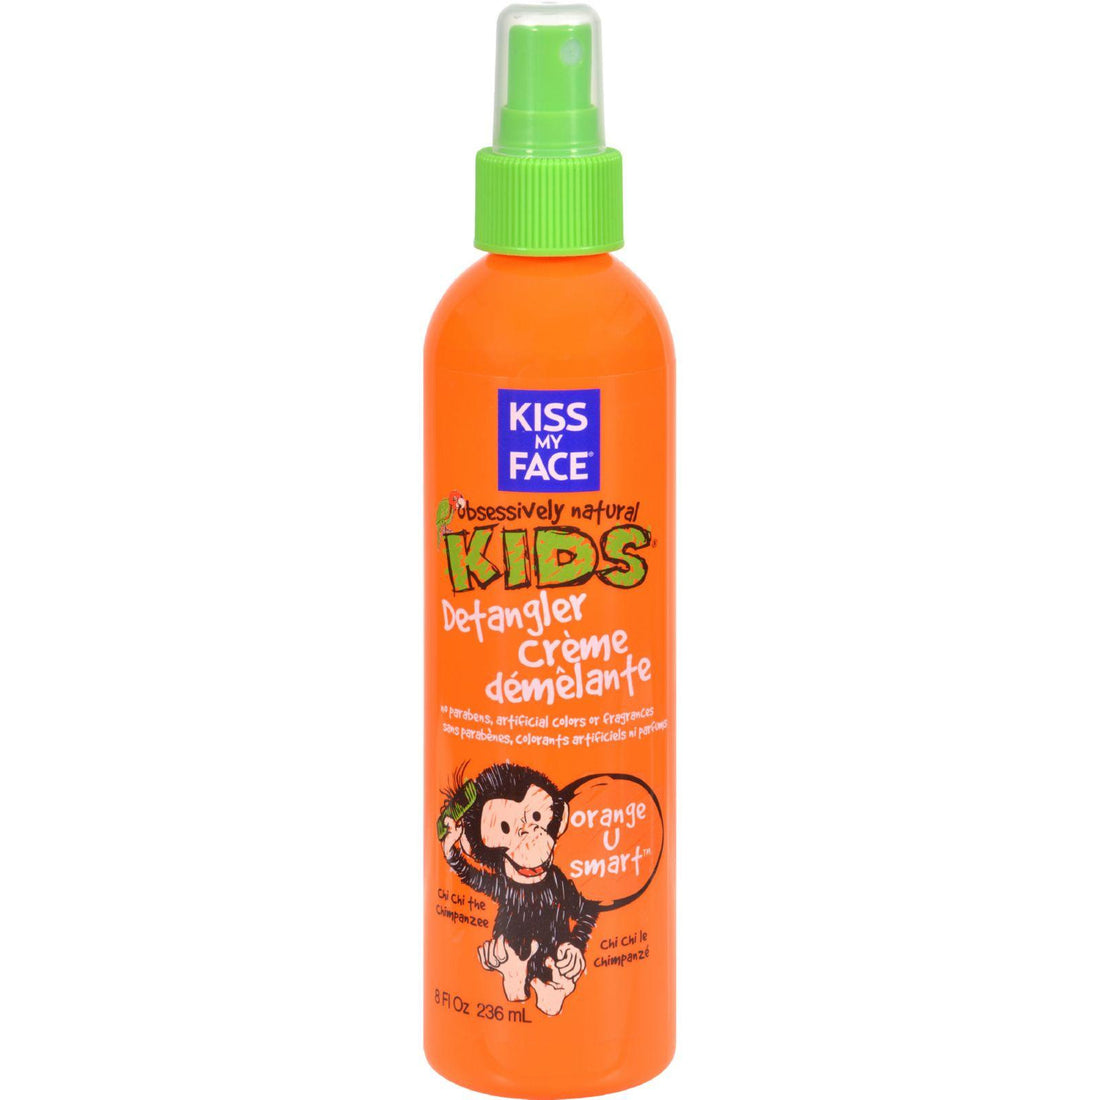 Mother Mantis: Kiss My Face Kids Detangler Creme Orange U Smart - 8 Fl Oz Kiss My Face